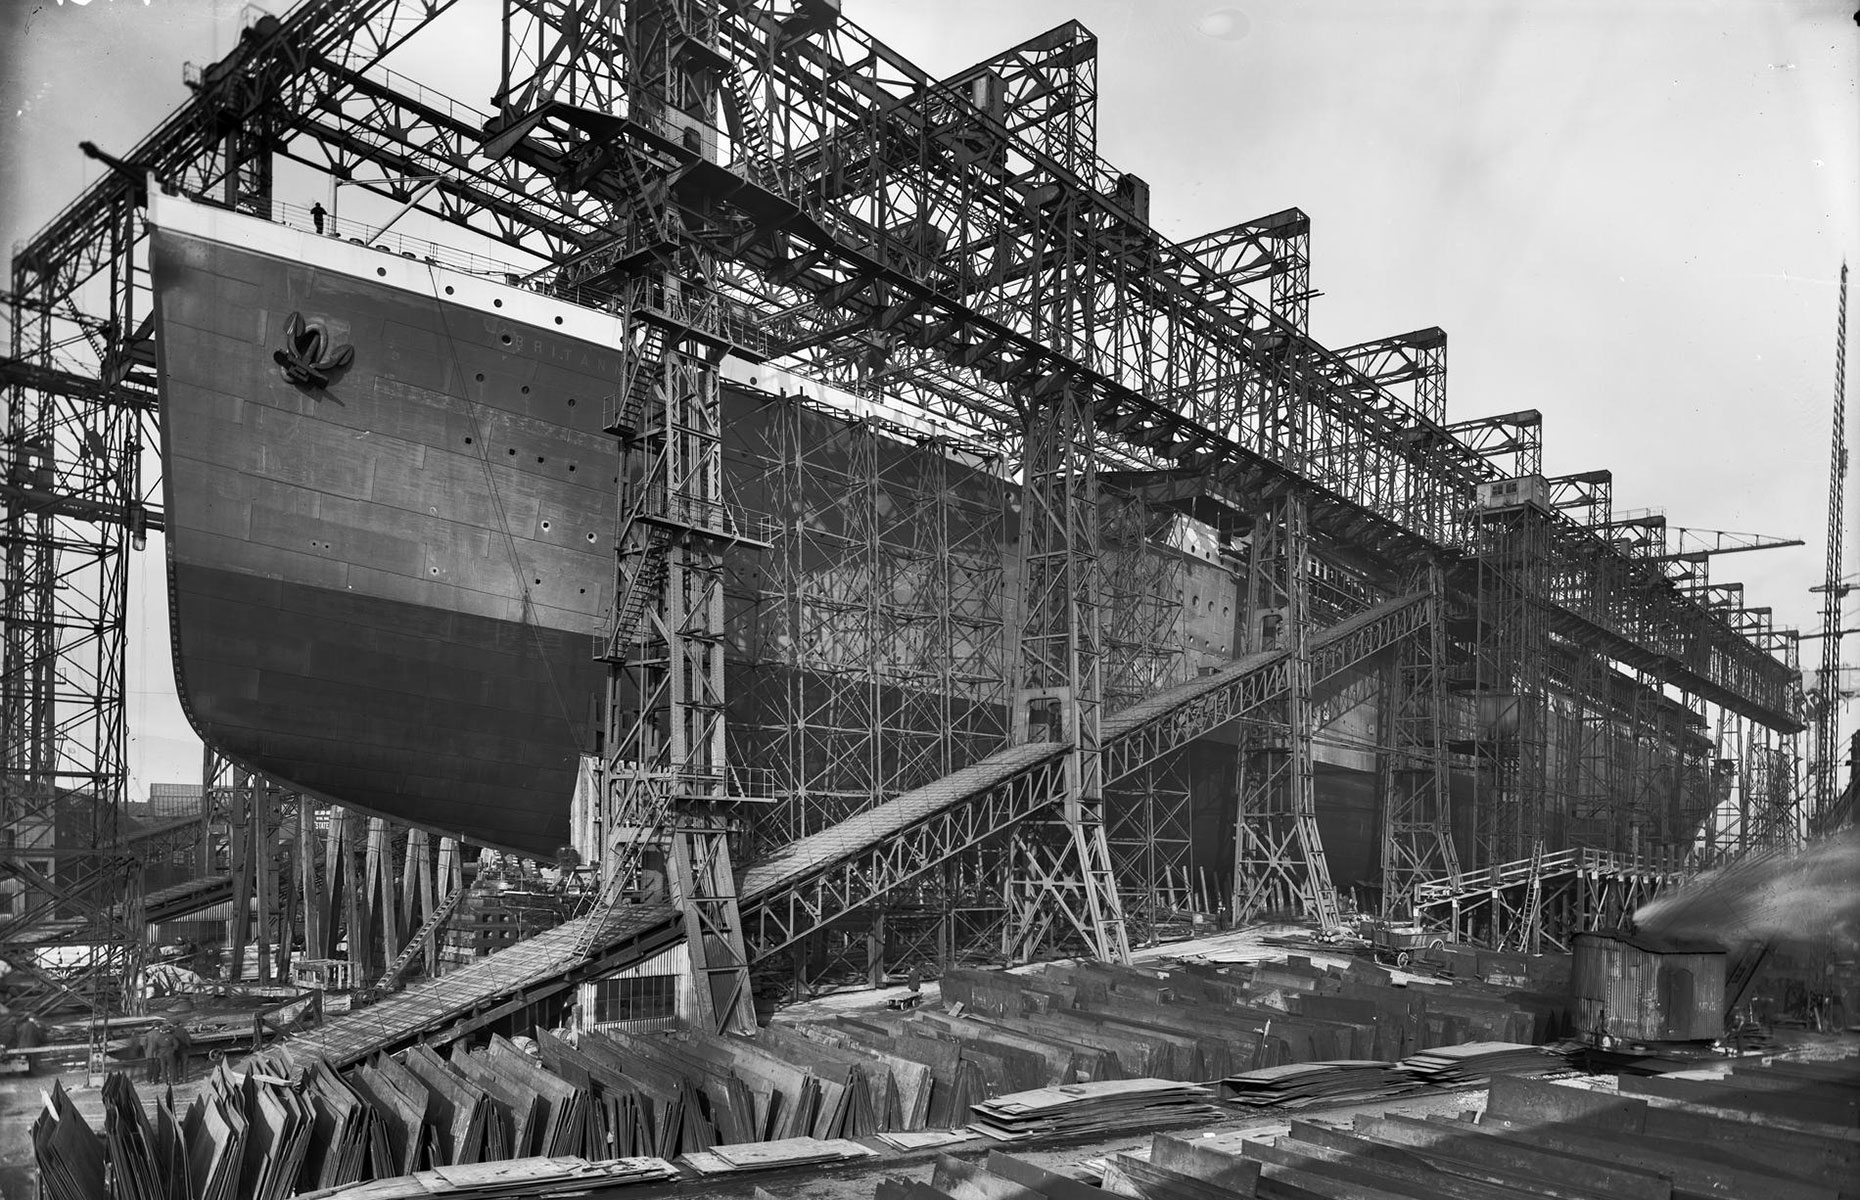 The Britannic being built at Harland & Wolff's shipyard, Belfast (Image: Unknown/Public domain/via Wikimedia Commons)